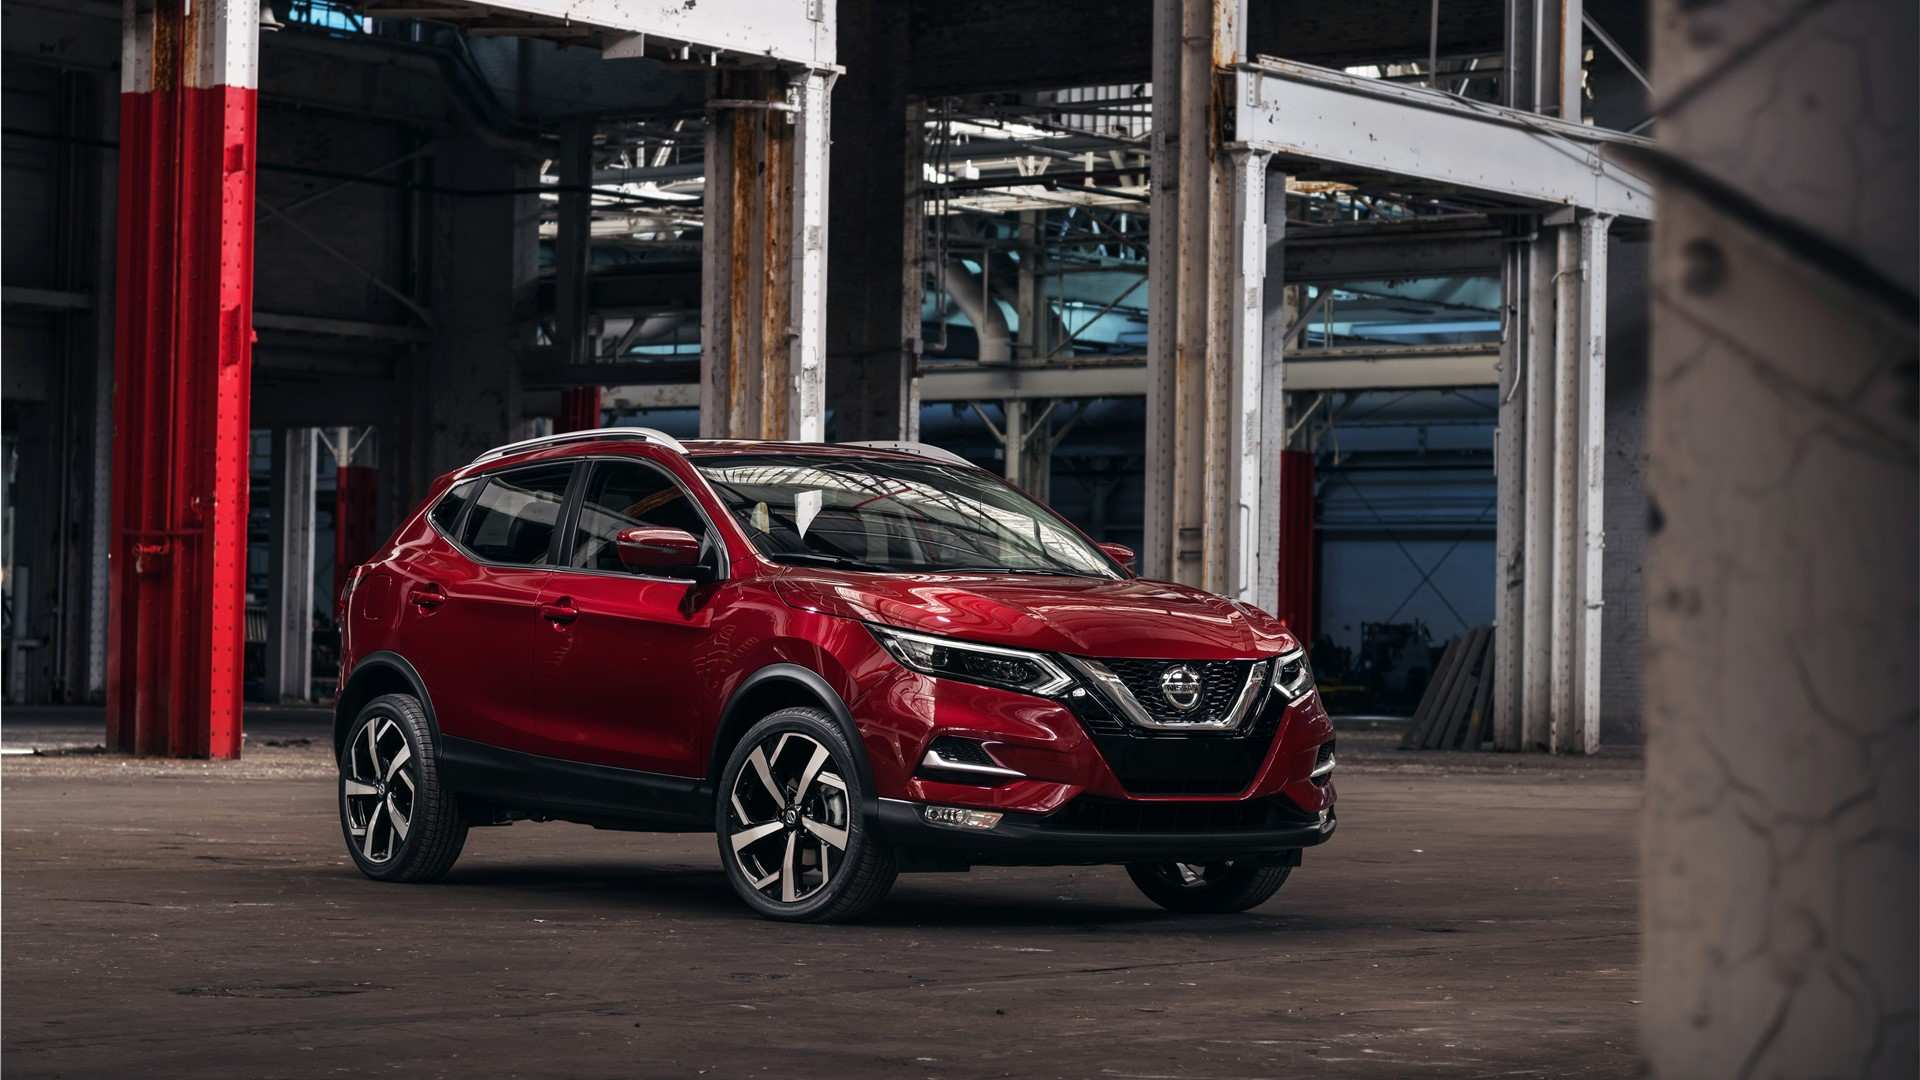 69 The Best Nissan Qashqai 2020 Pictures